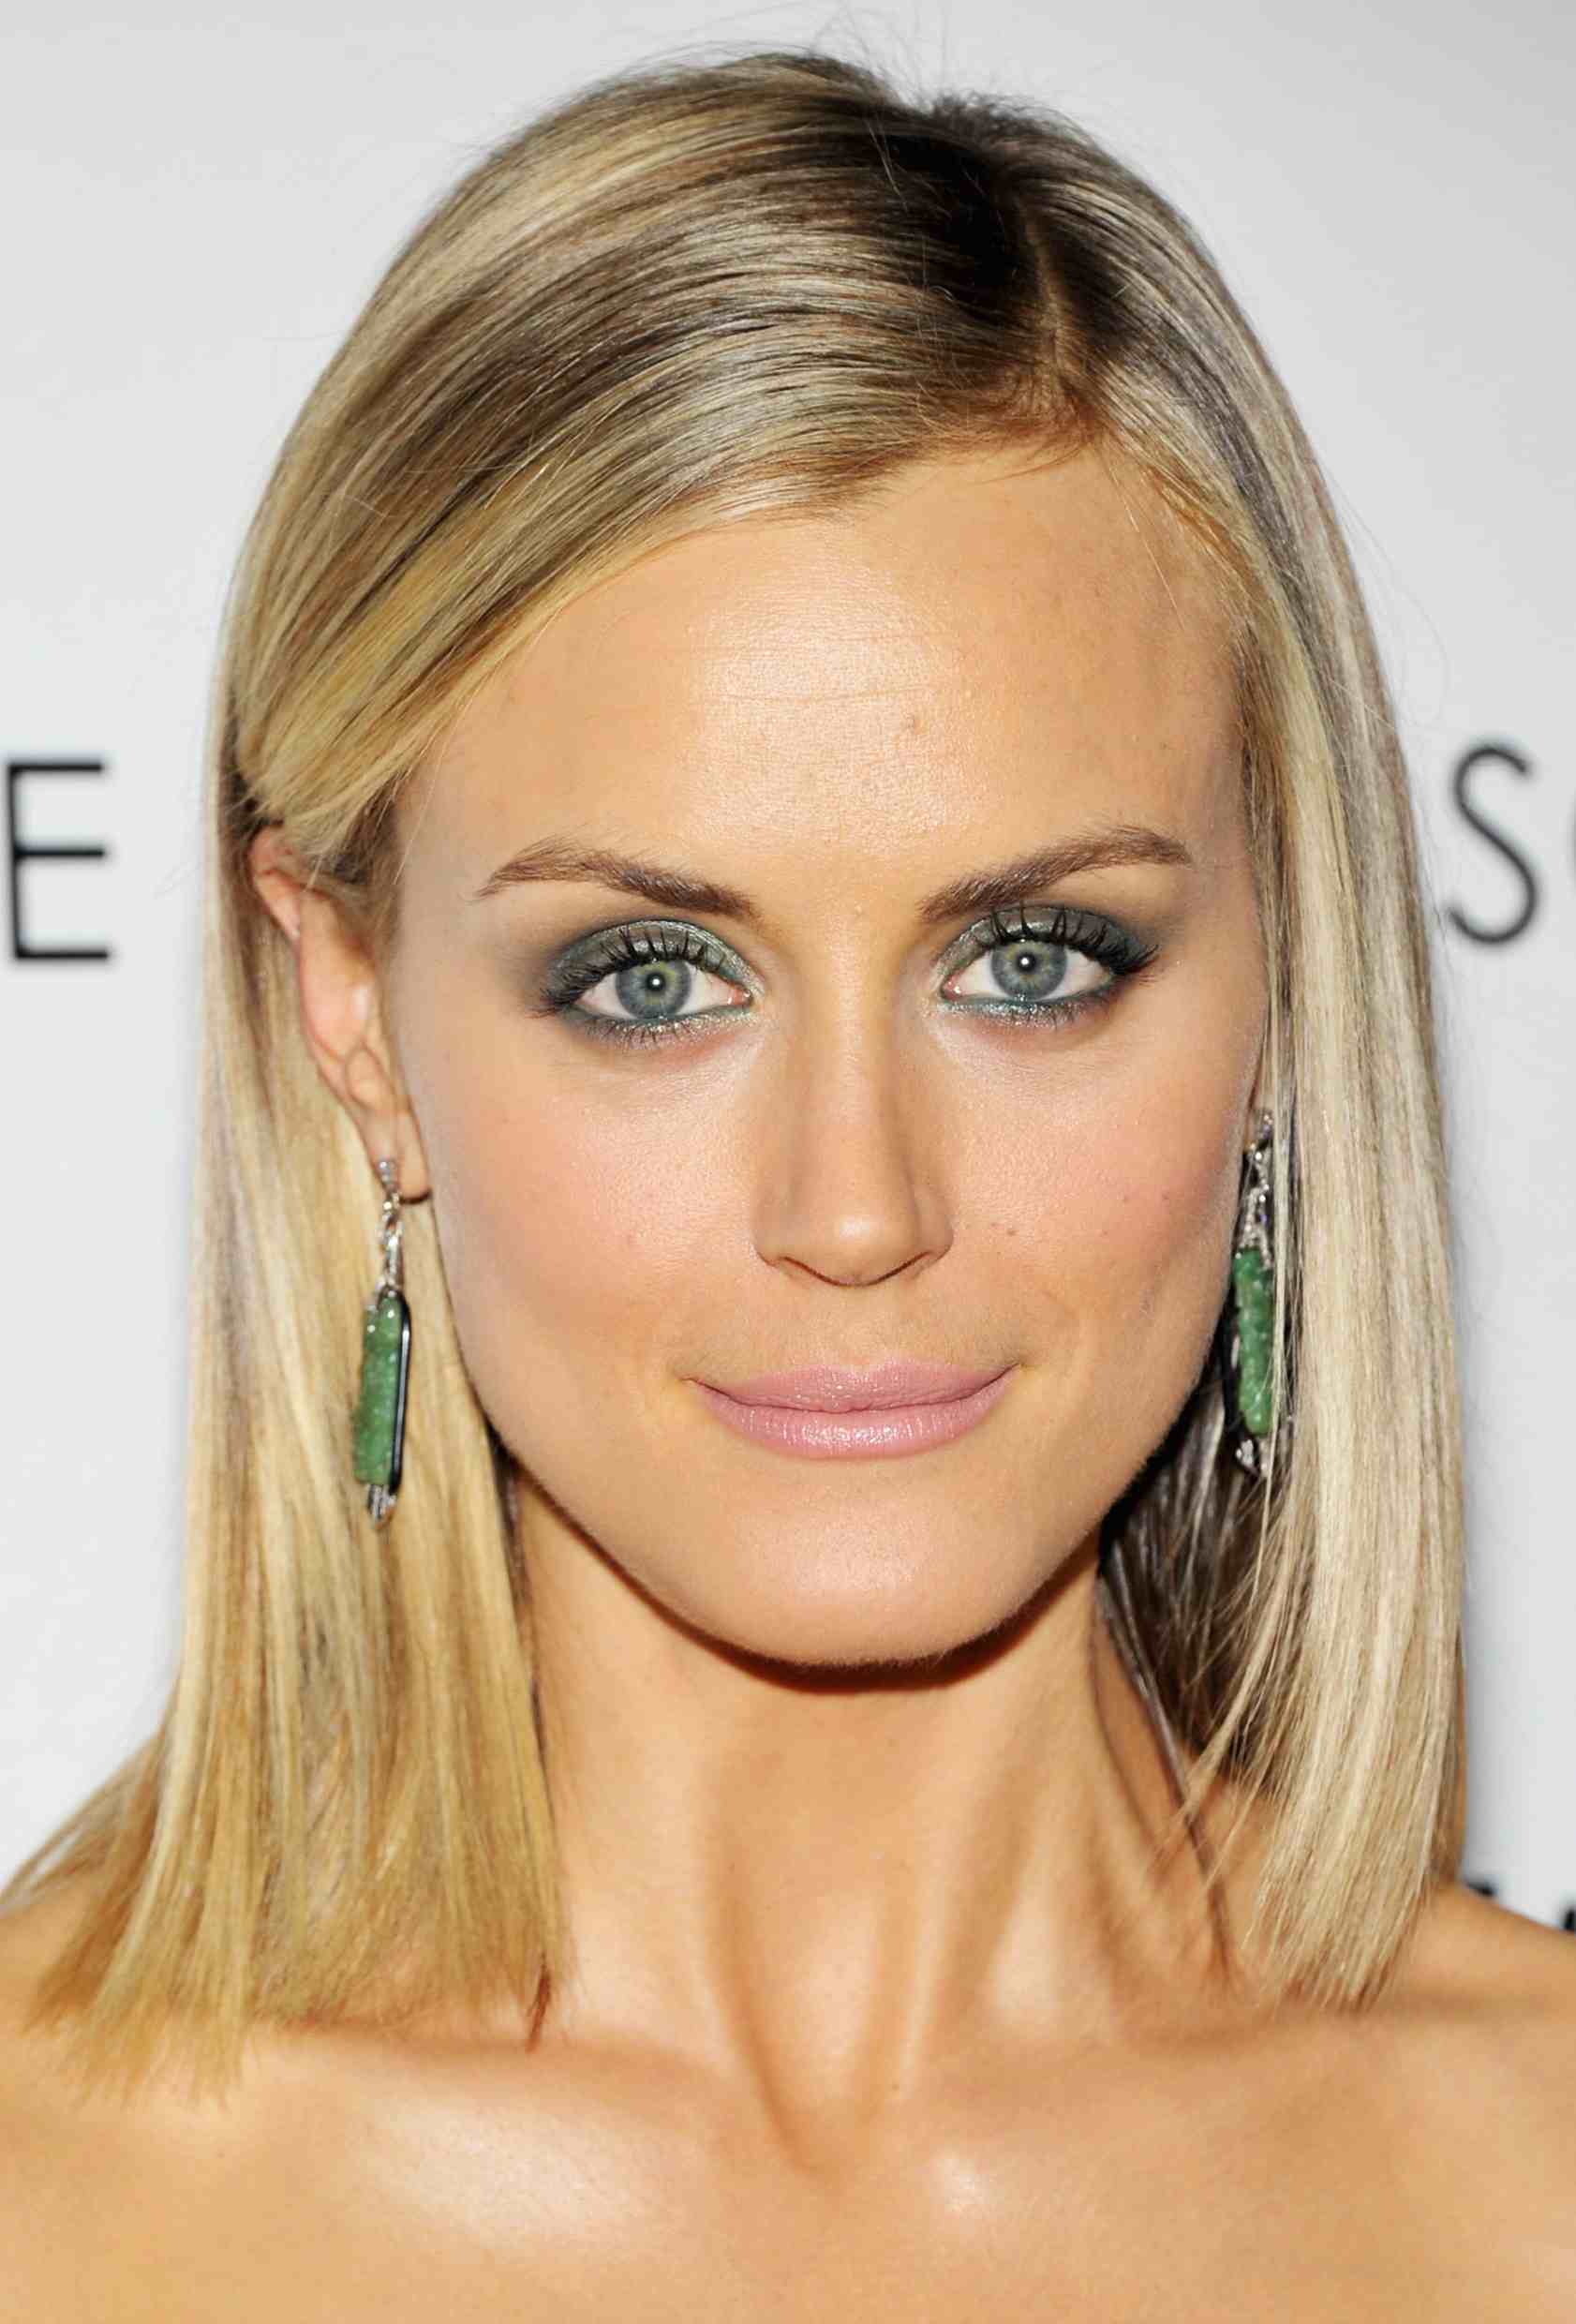 Hot tv babe of the week taylor schilling